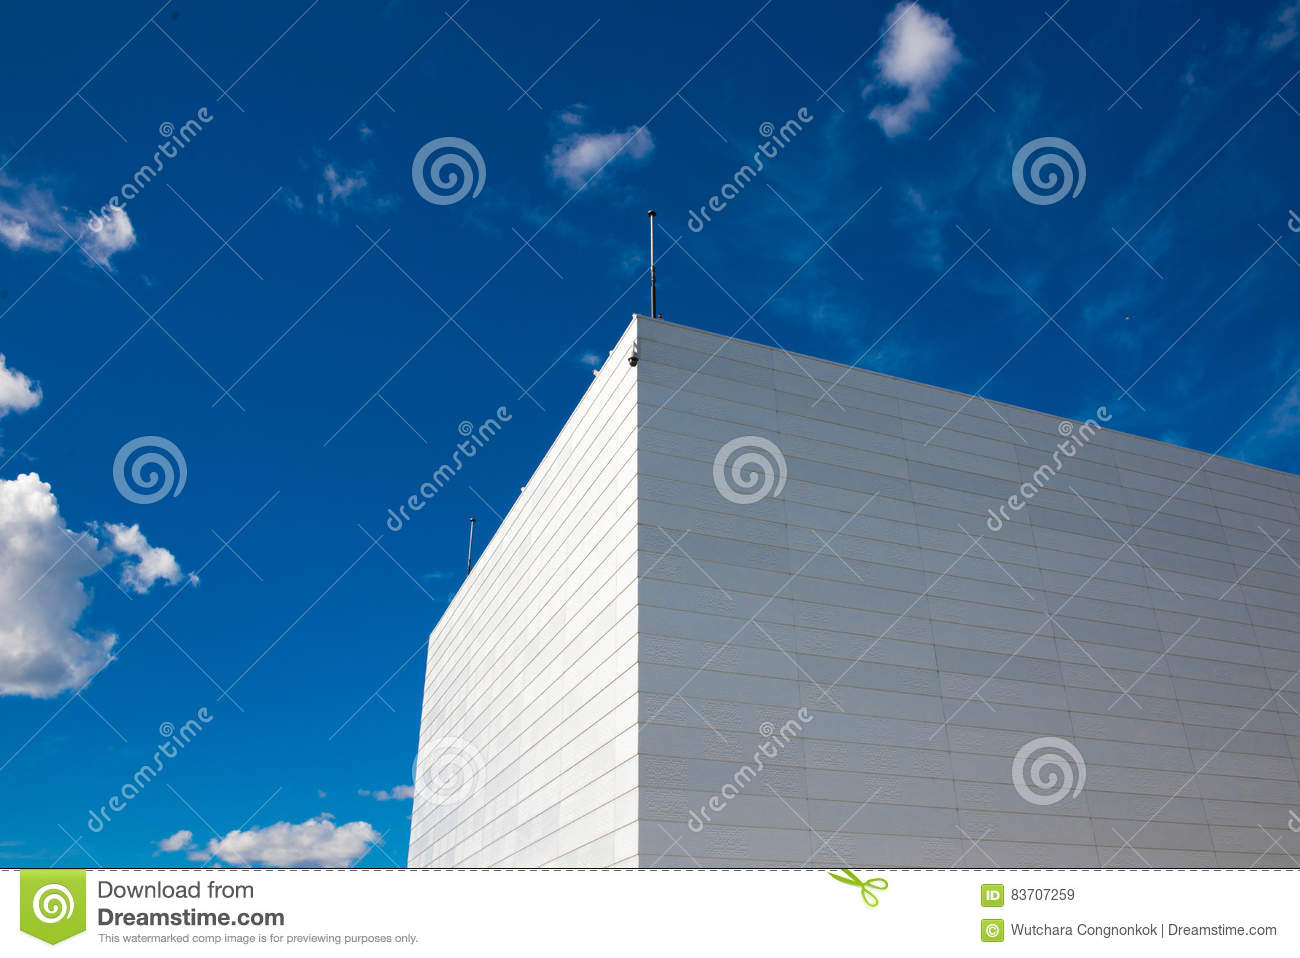 Common Modern Business Skyscrapers, High-rise Buildings Stock Photo